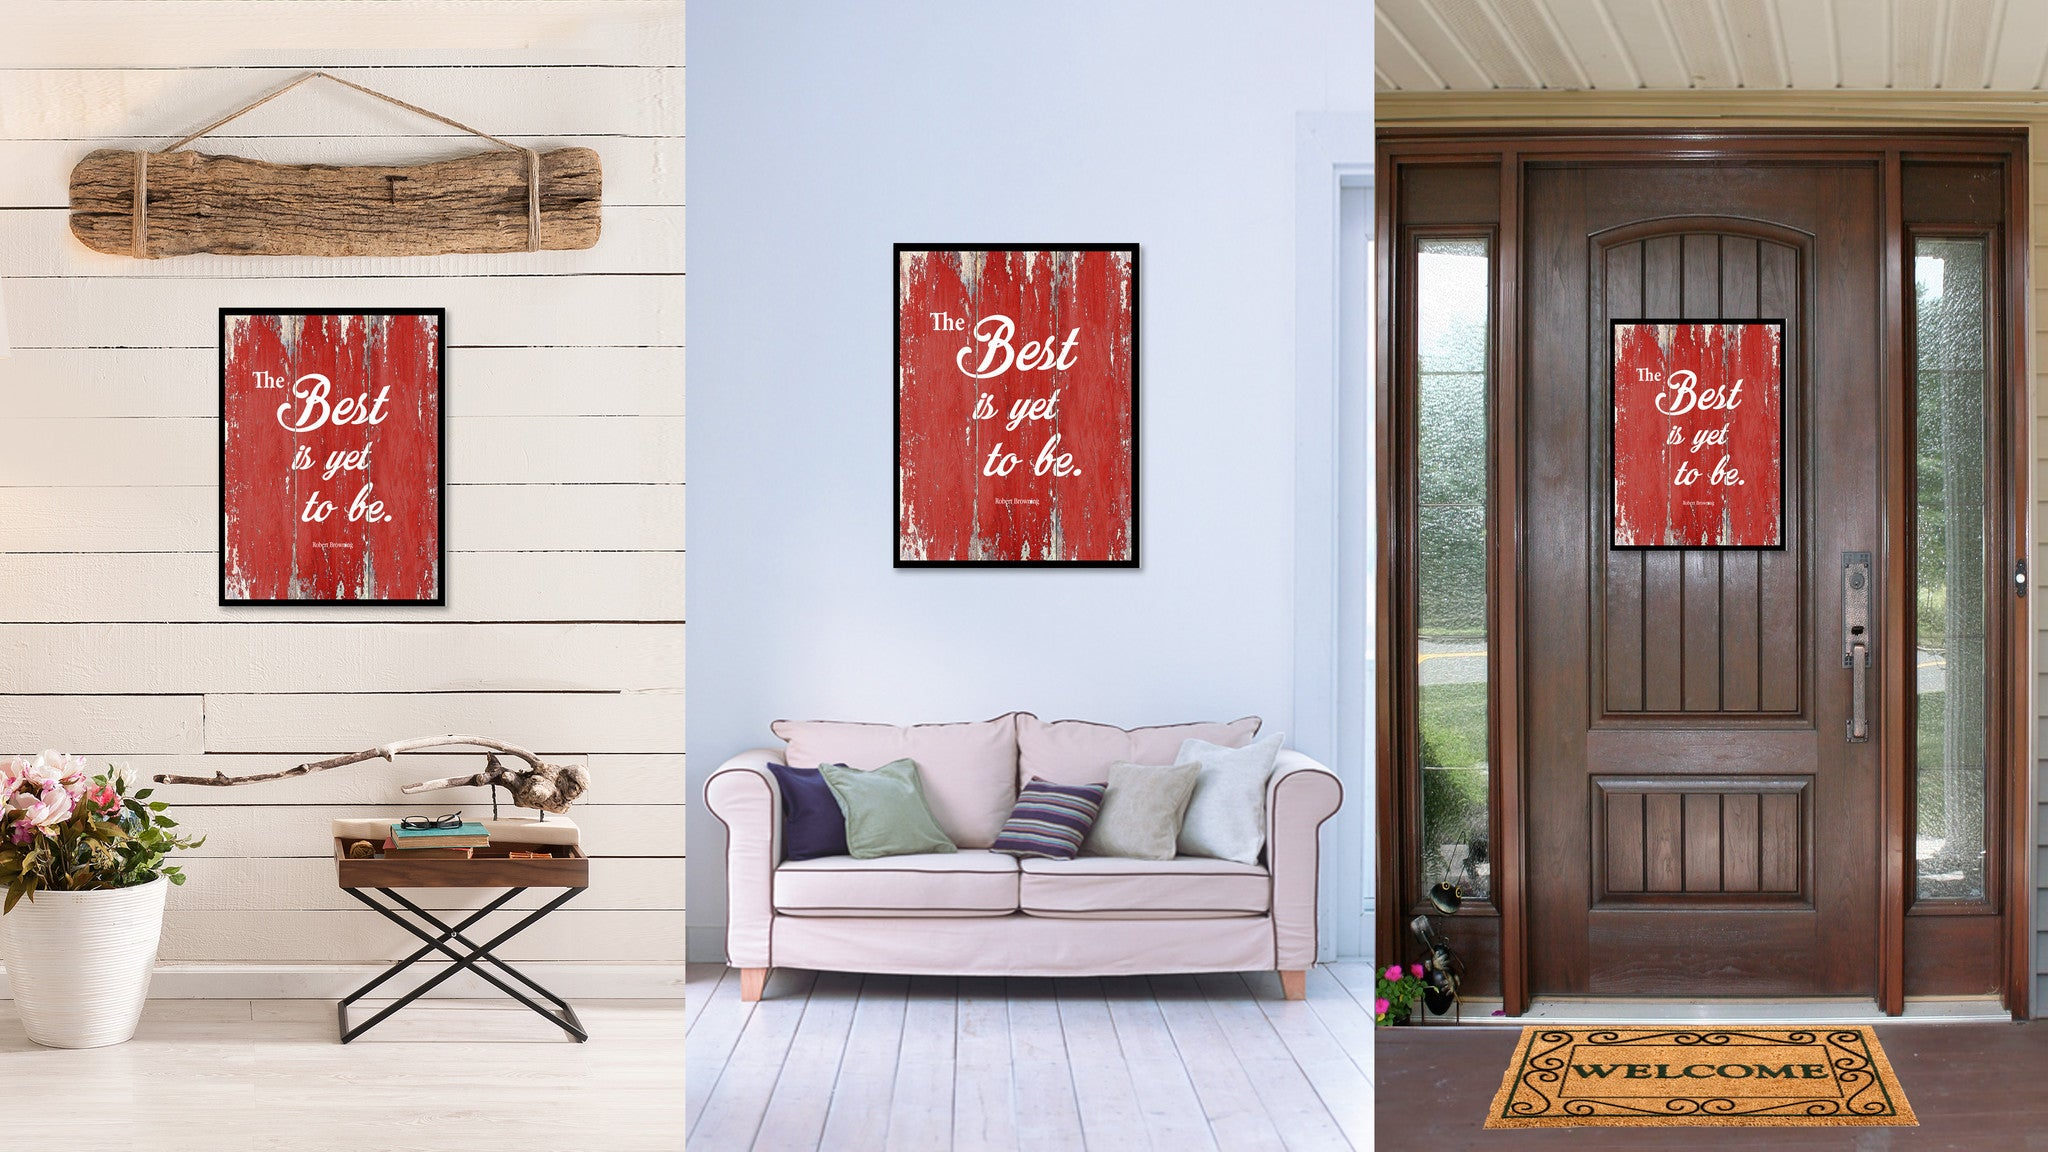 The Best Is Yet To Be Robert Browning Inspirational Quote Saying Gift Ideas Home  Decor Wall